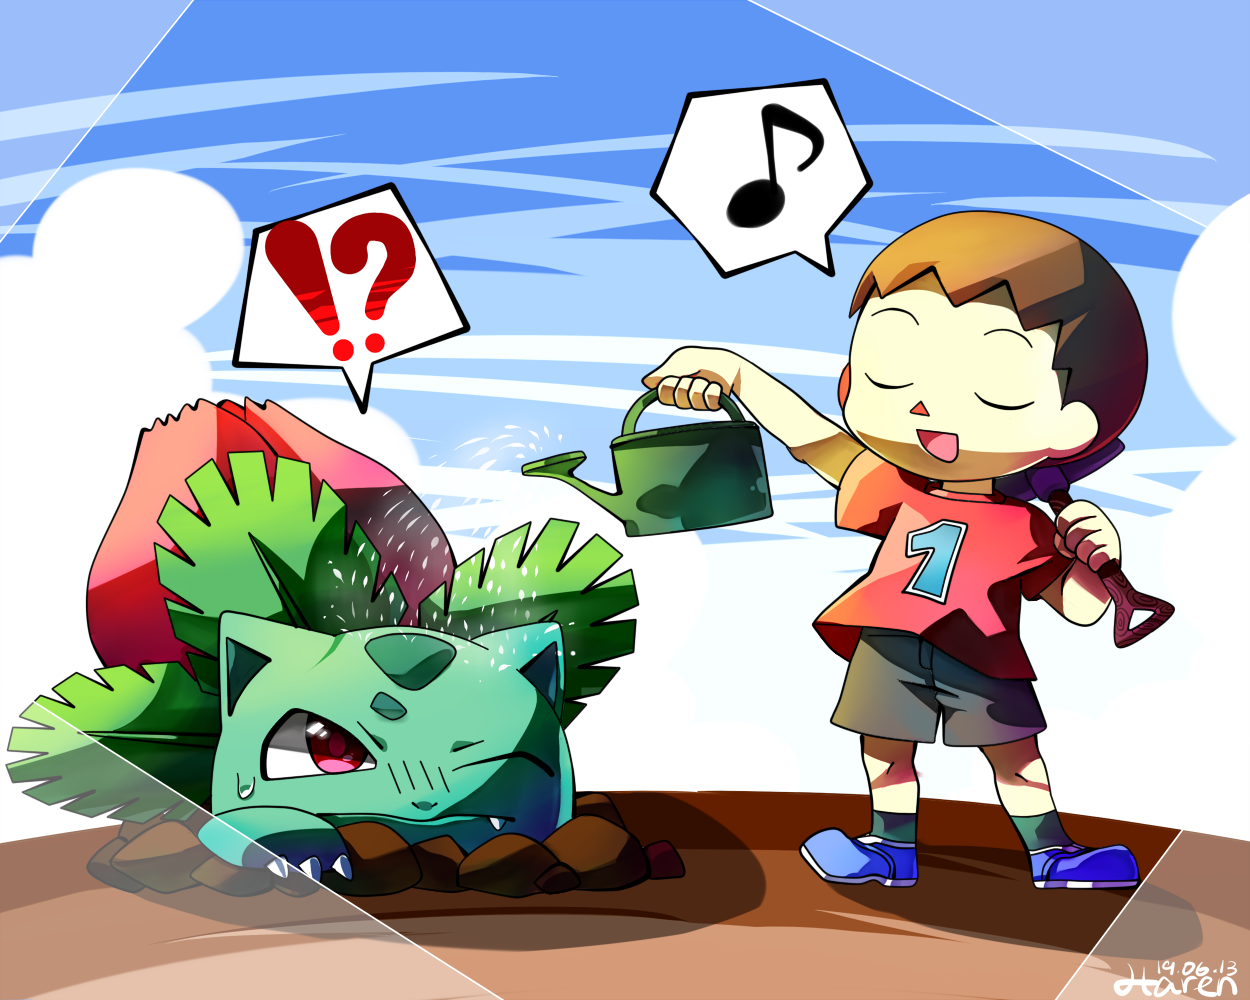 Villager super smash bros